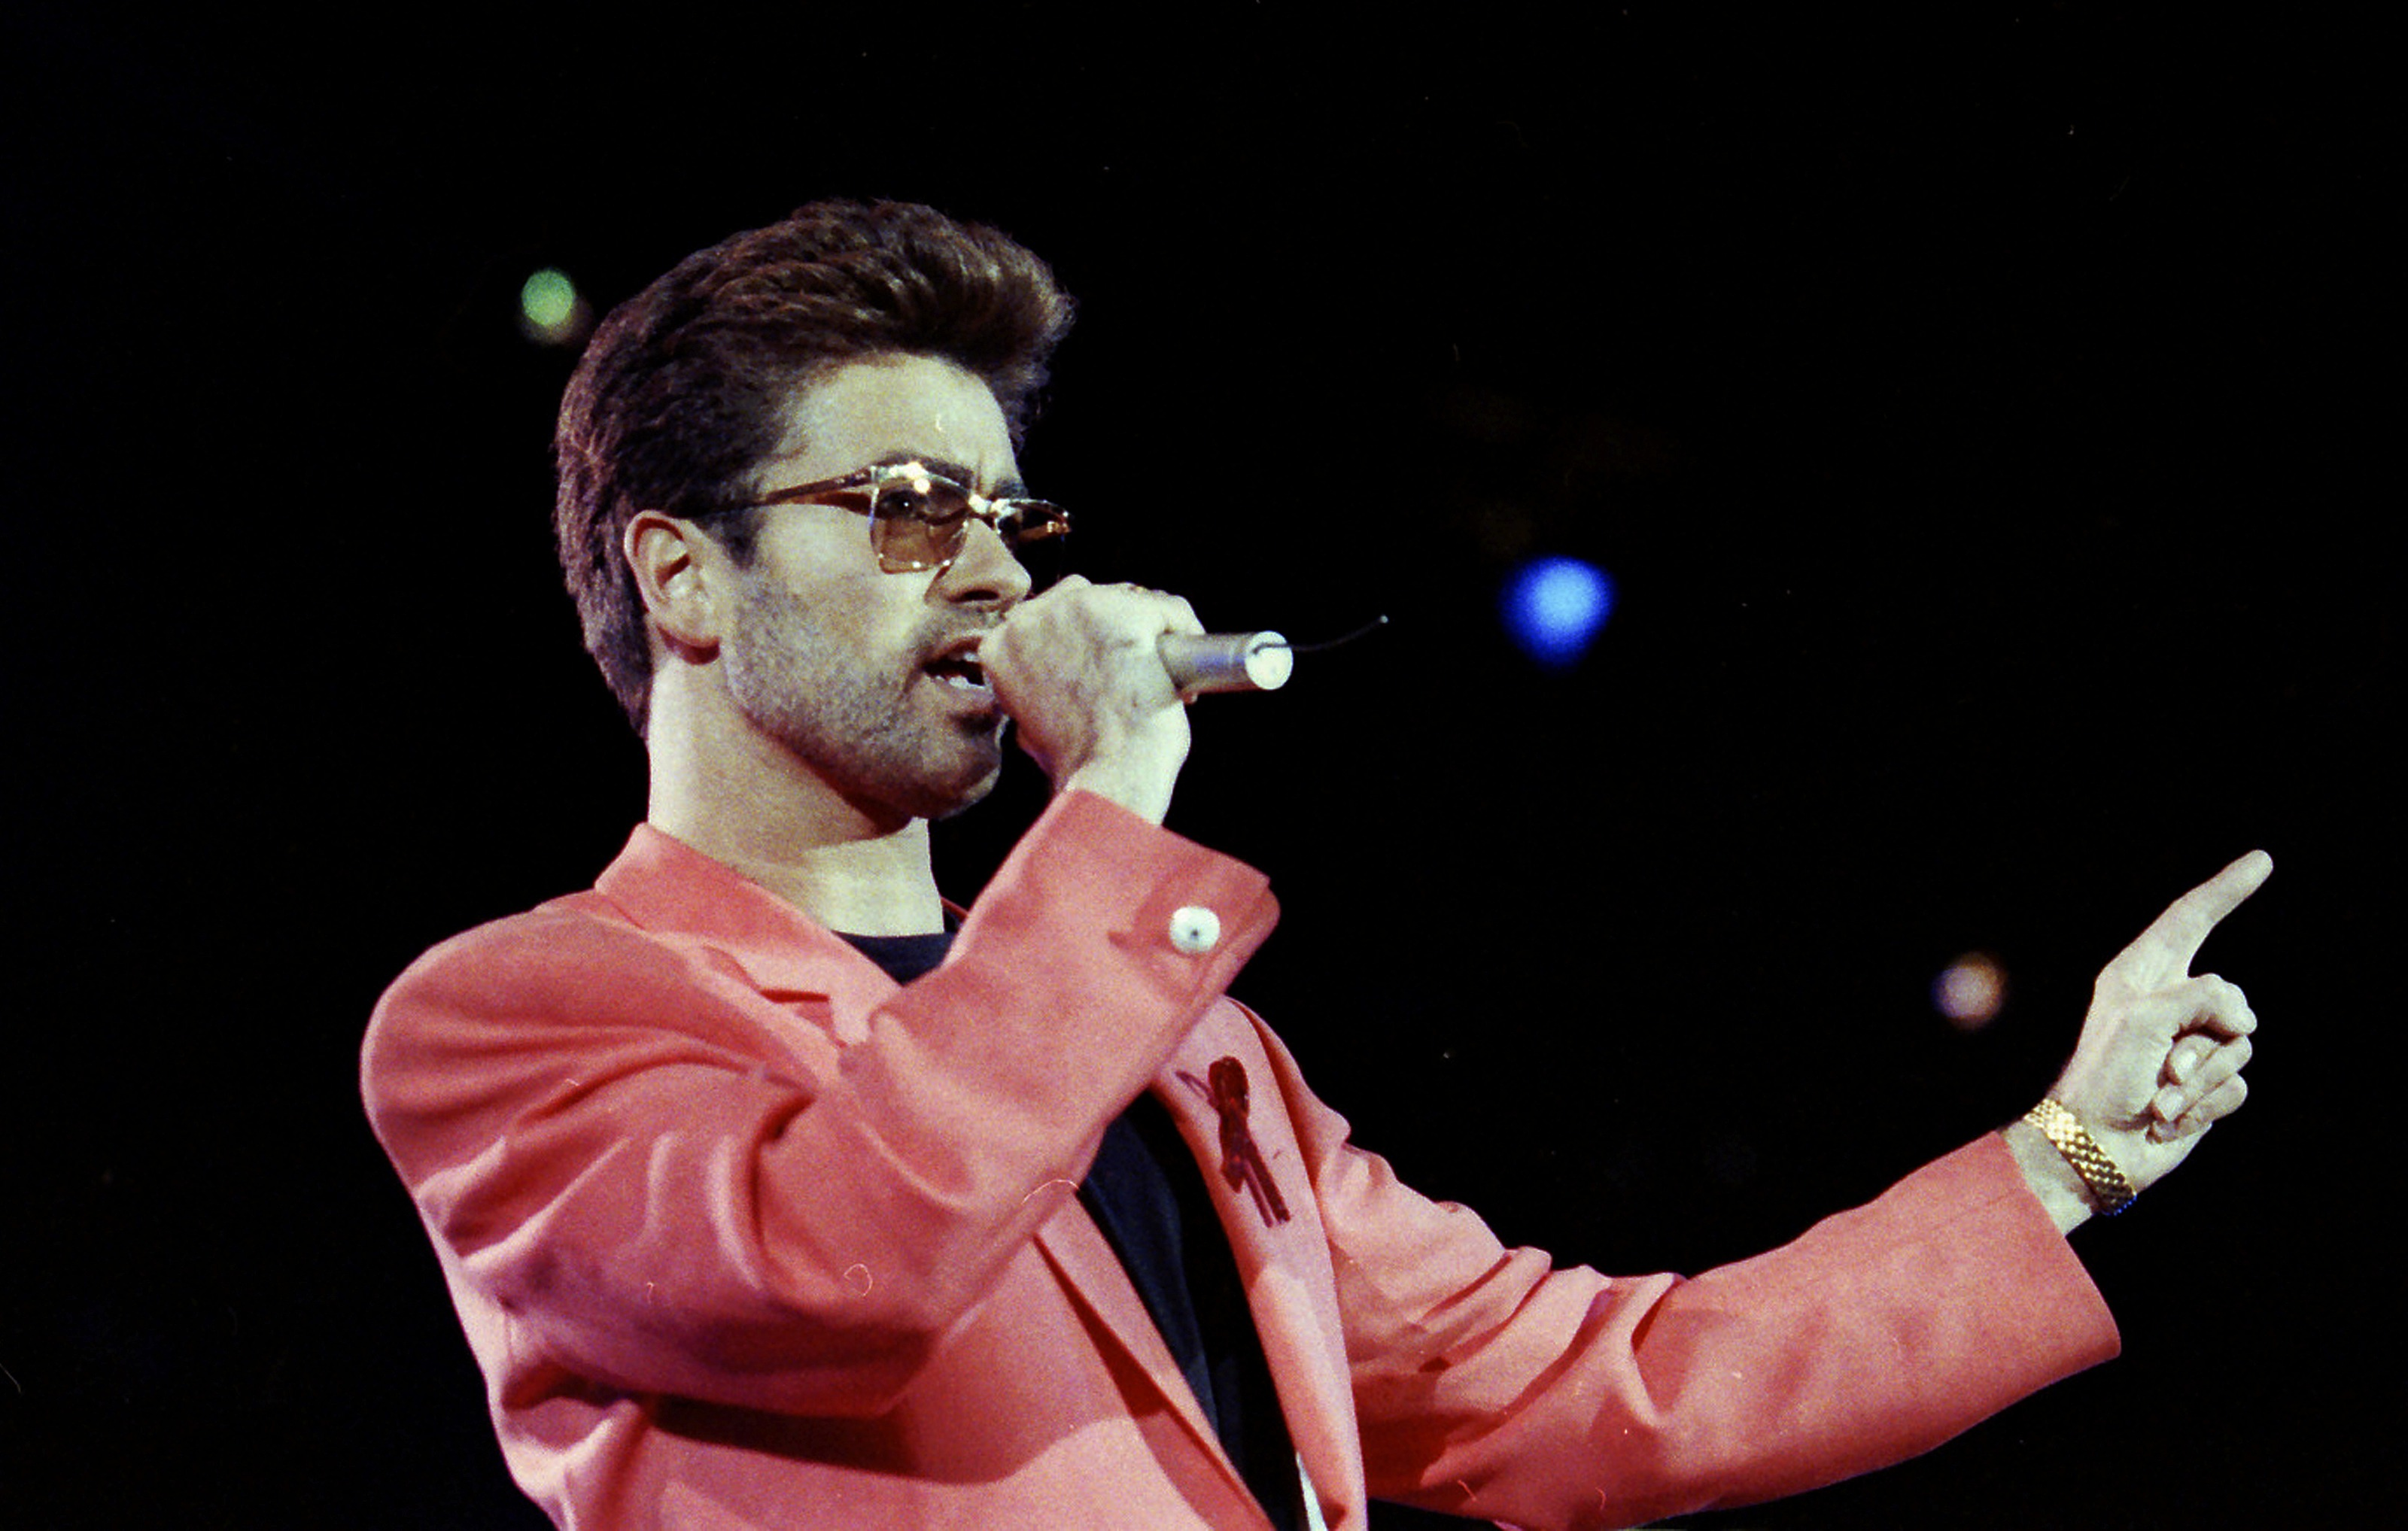 2017 03 07T131130Z 93663473 LR1ED3710MV43 RTRMADP 3 PEOPLE GEORGEMICHAEL